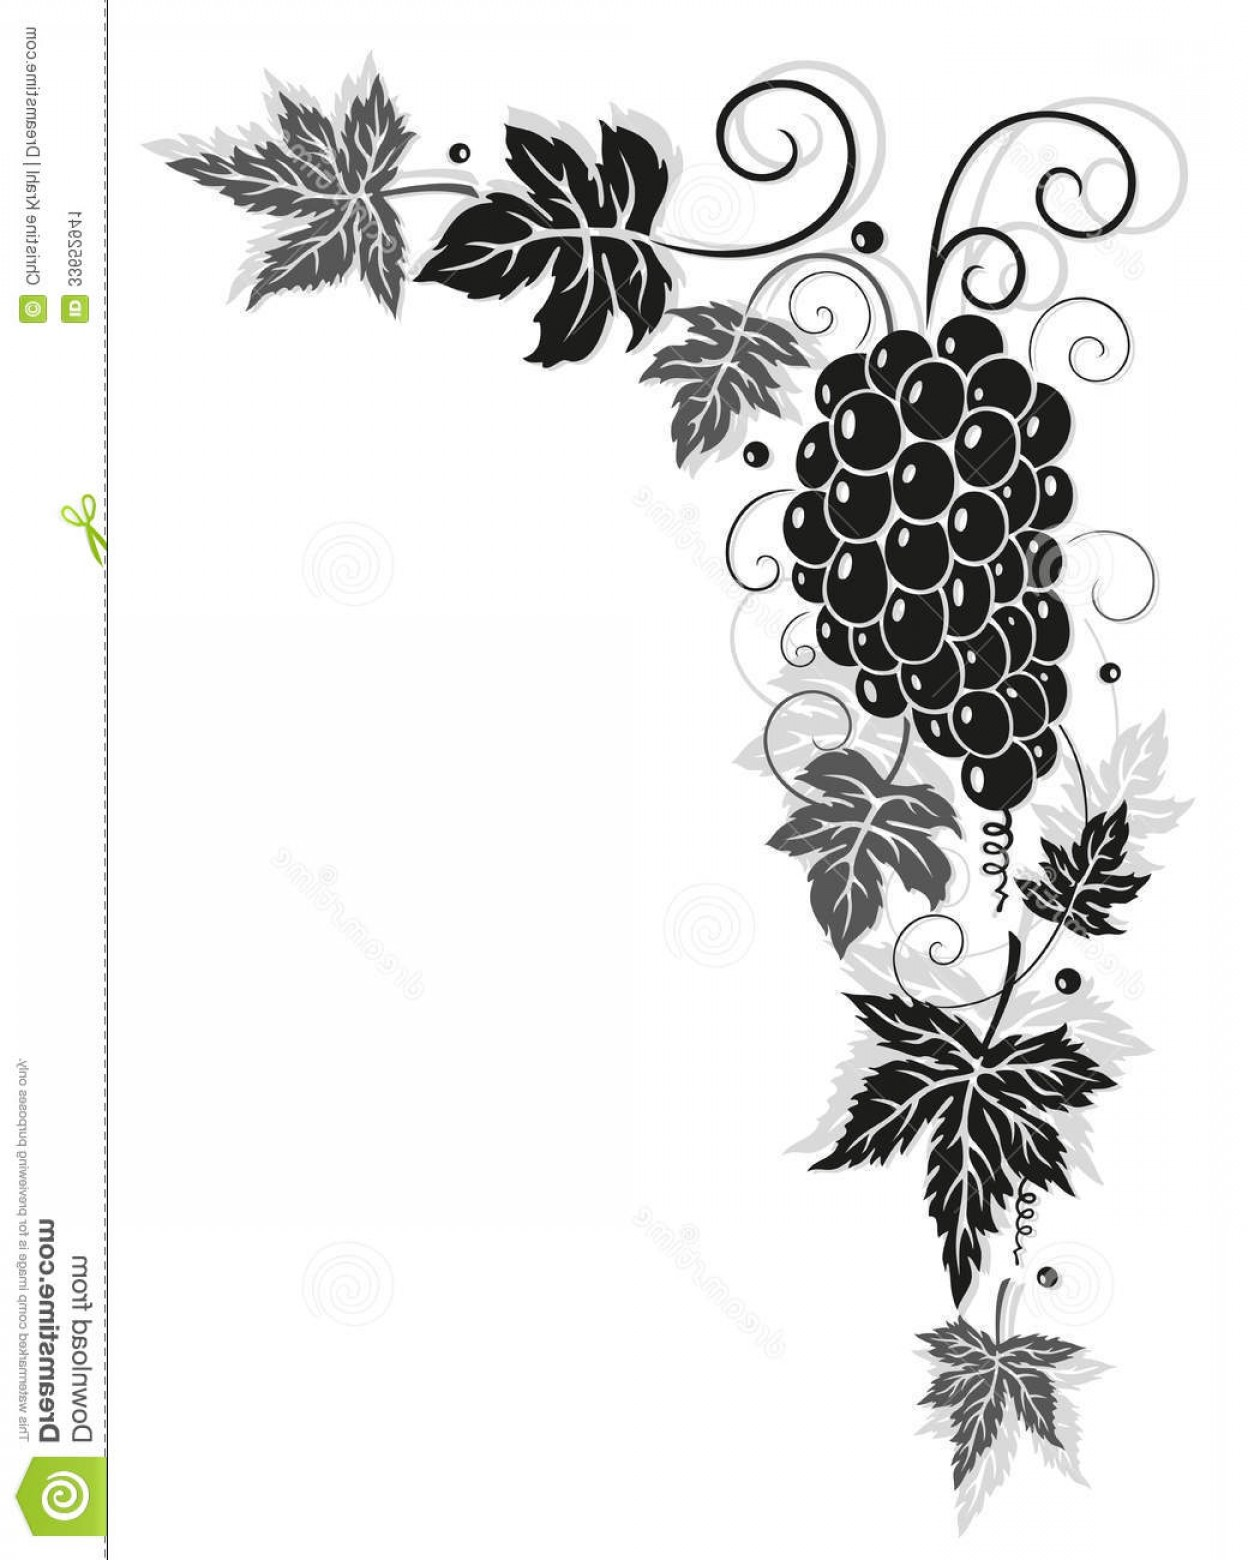 Vector Vine Tree: Stock Image Vine Leaves Autumn Border Grapes Vector Illustration Image